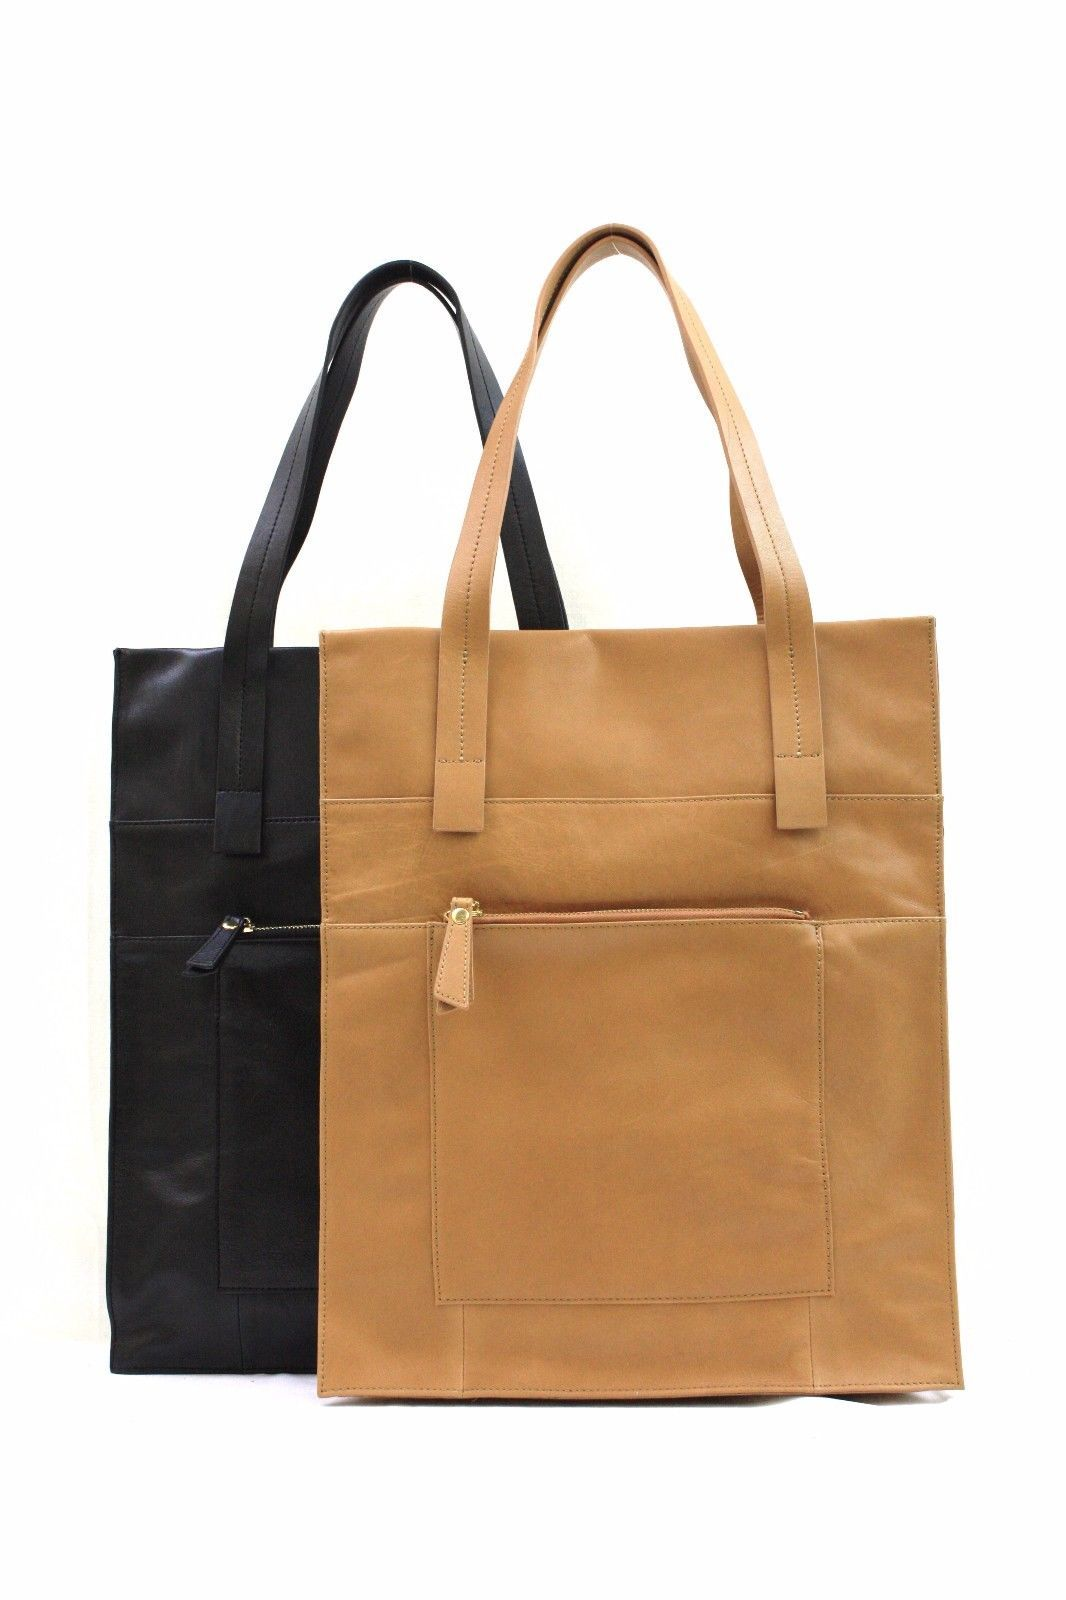 Ffany Exclusive Genuine Leather Shopping Tote Purse Free Shipping 8685730 Fs d578cd93f0968